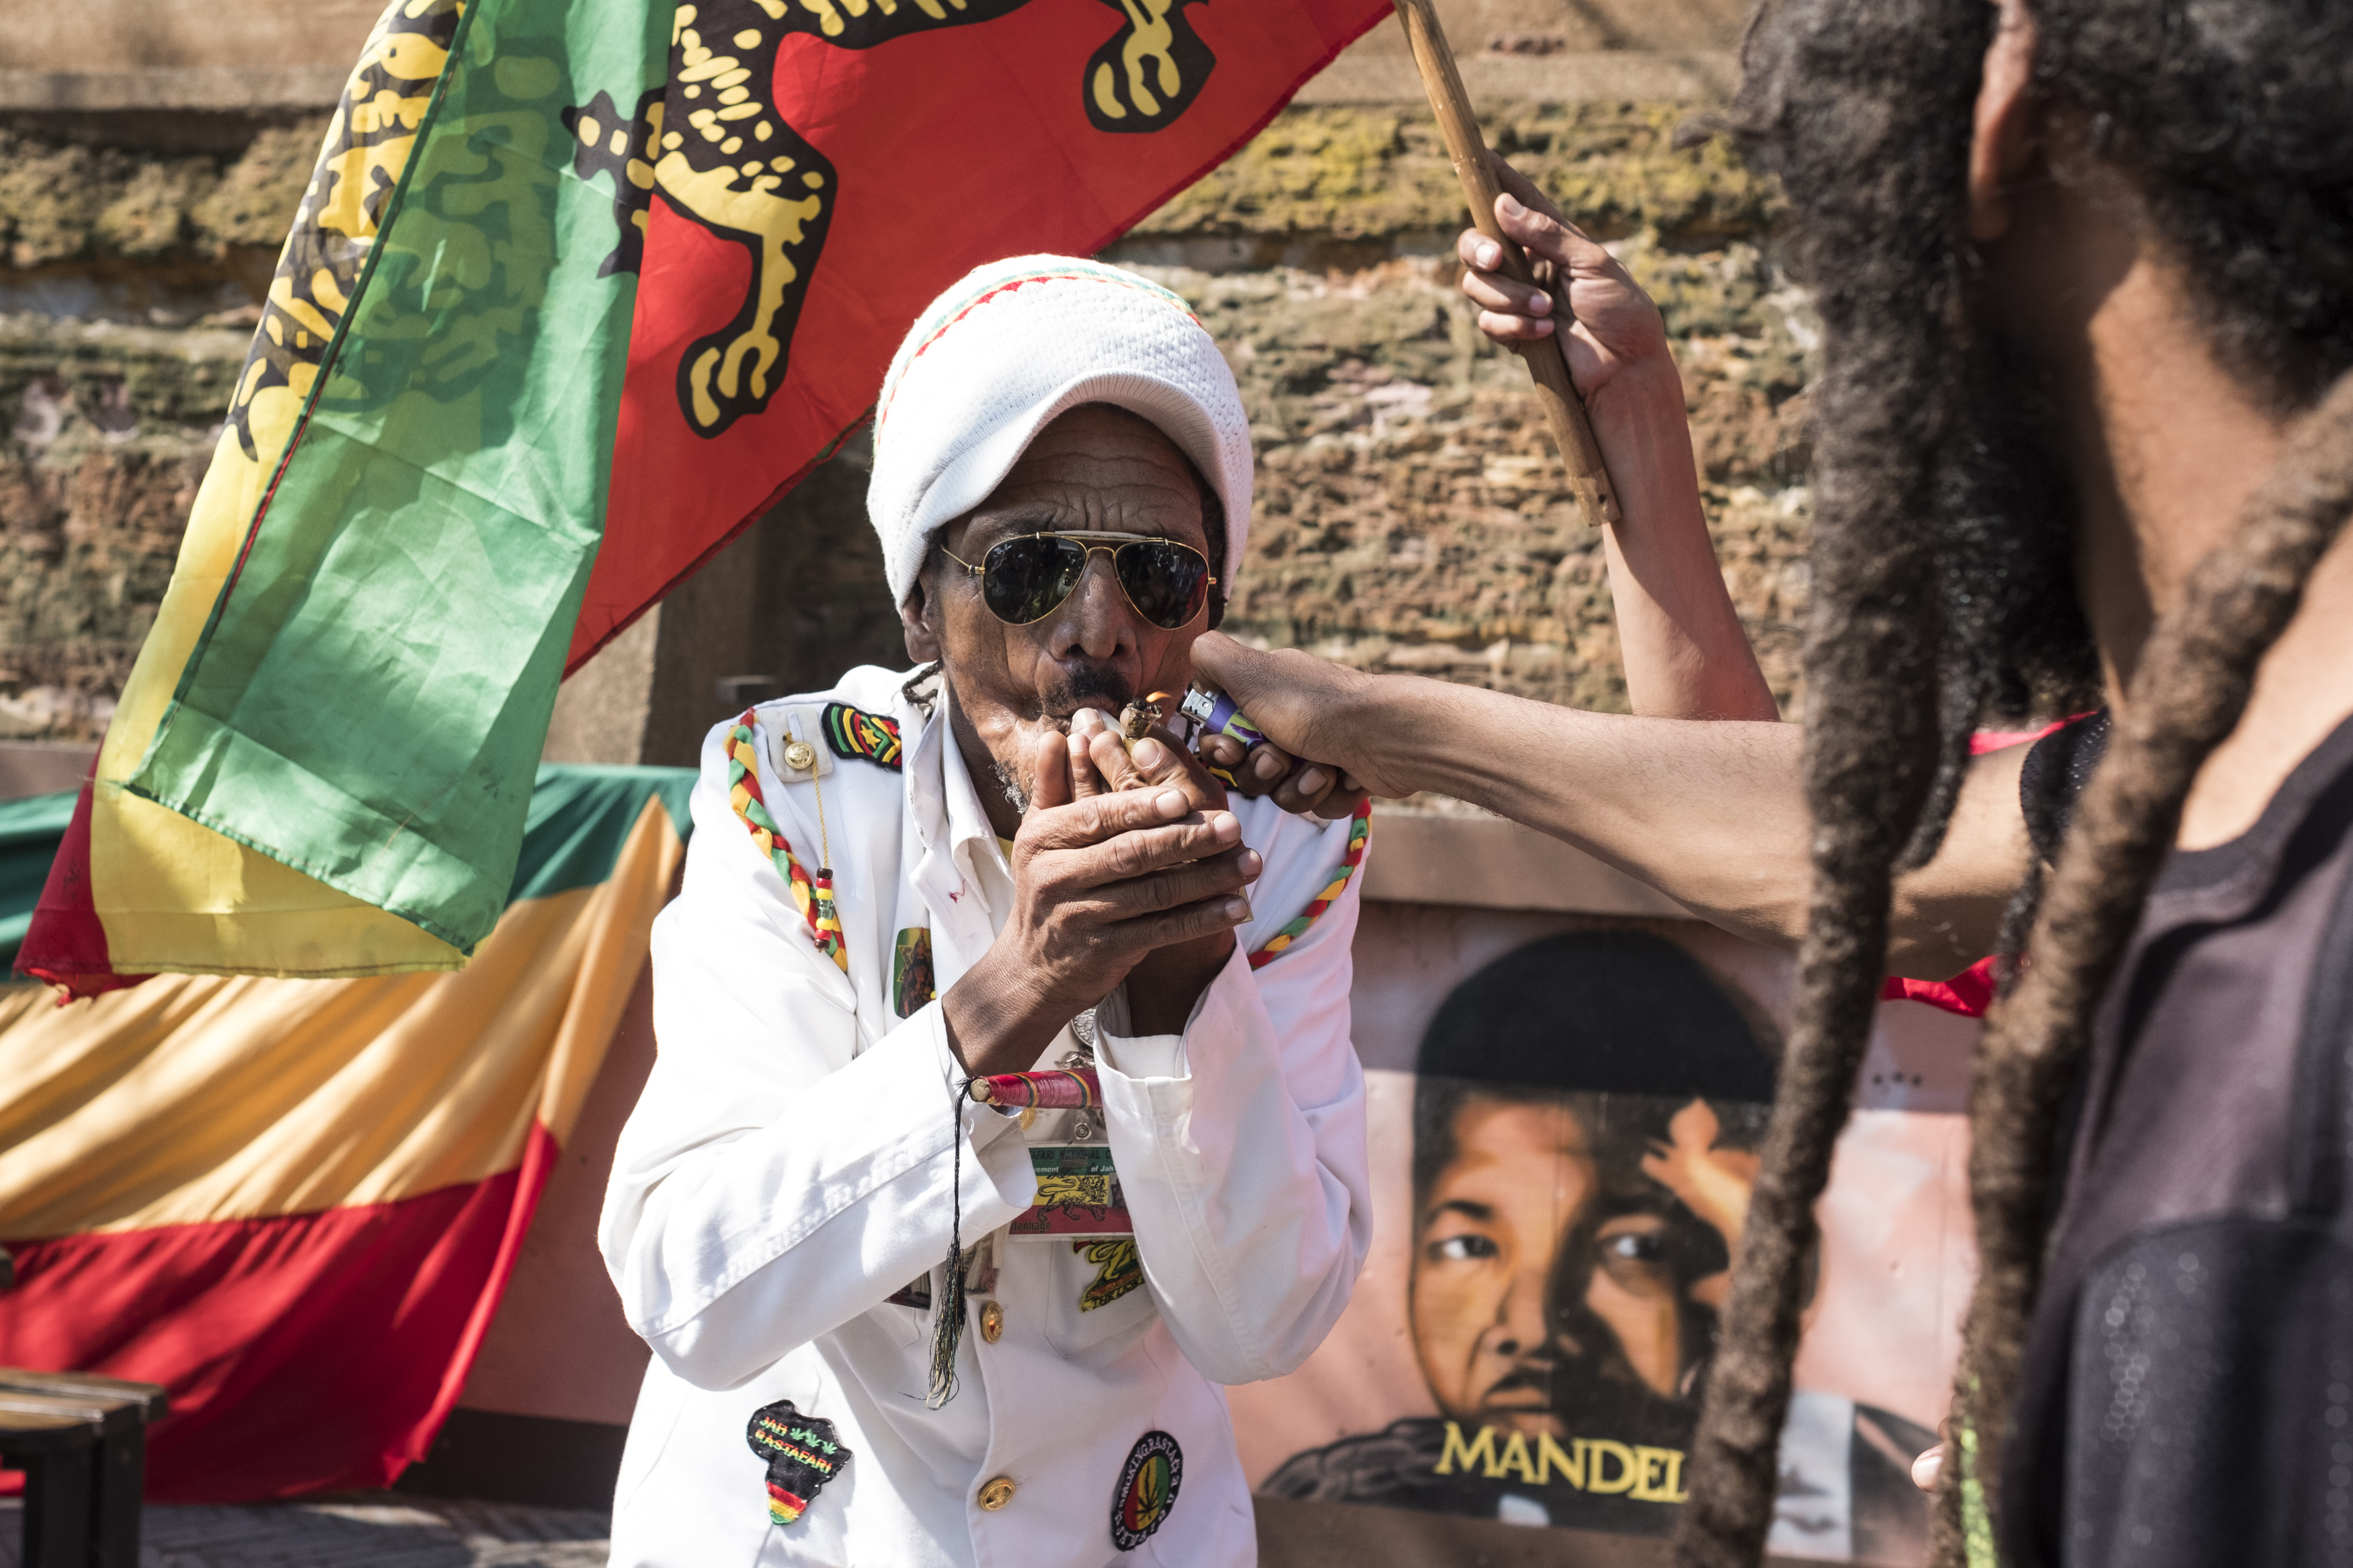 A man smokes marijuana outside the Constitutional Court in Johannesburg on Sept. 18, 2018.